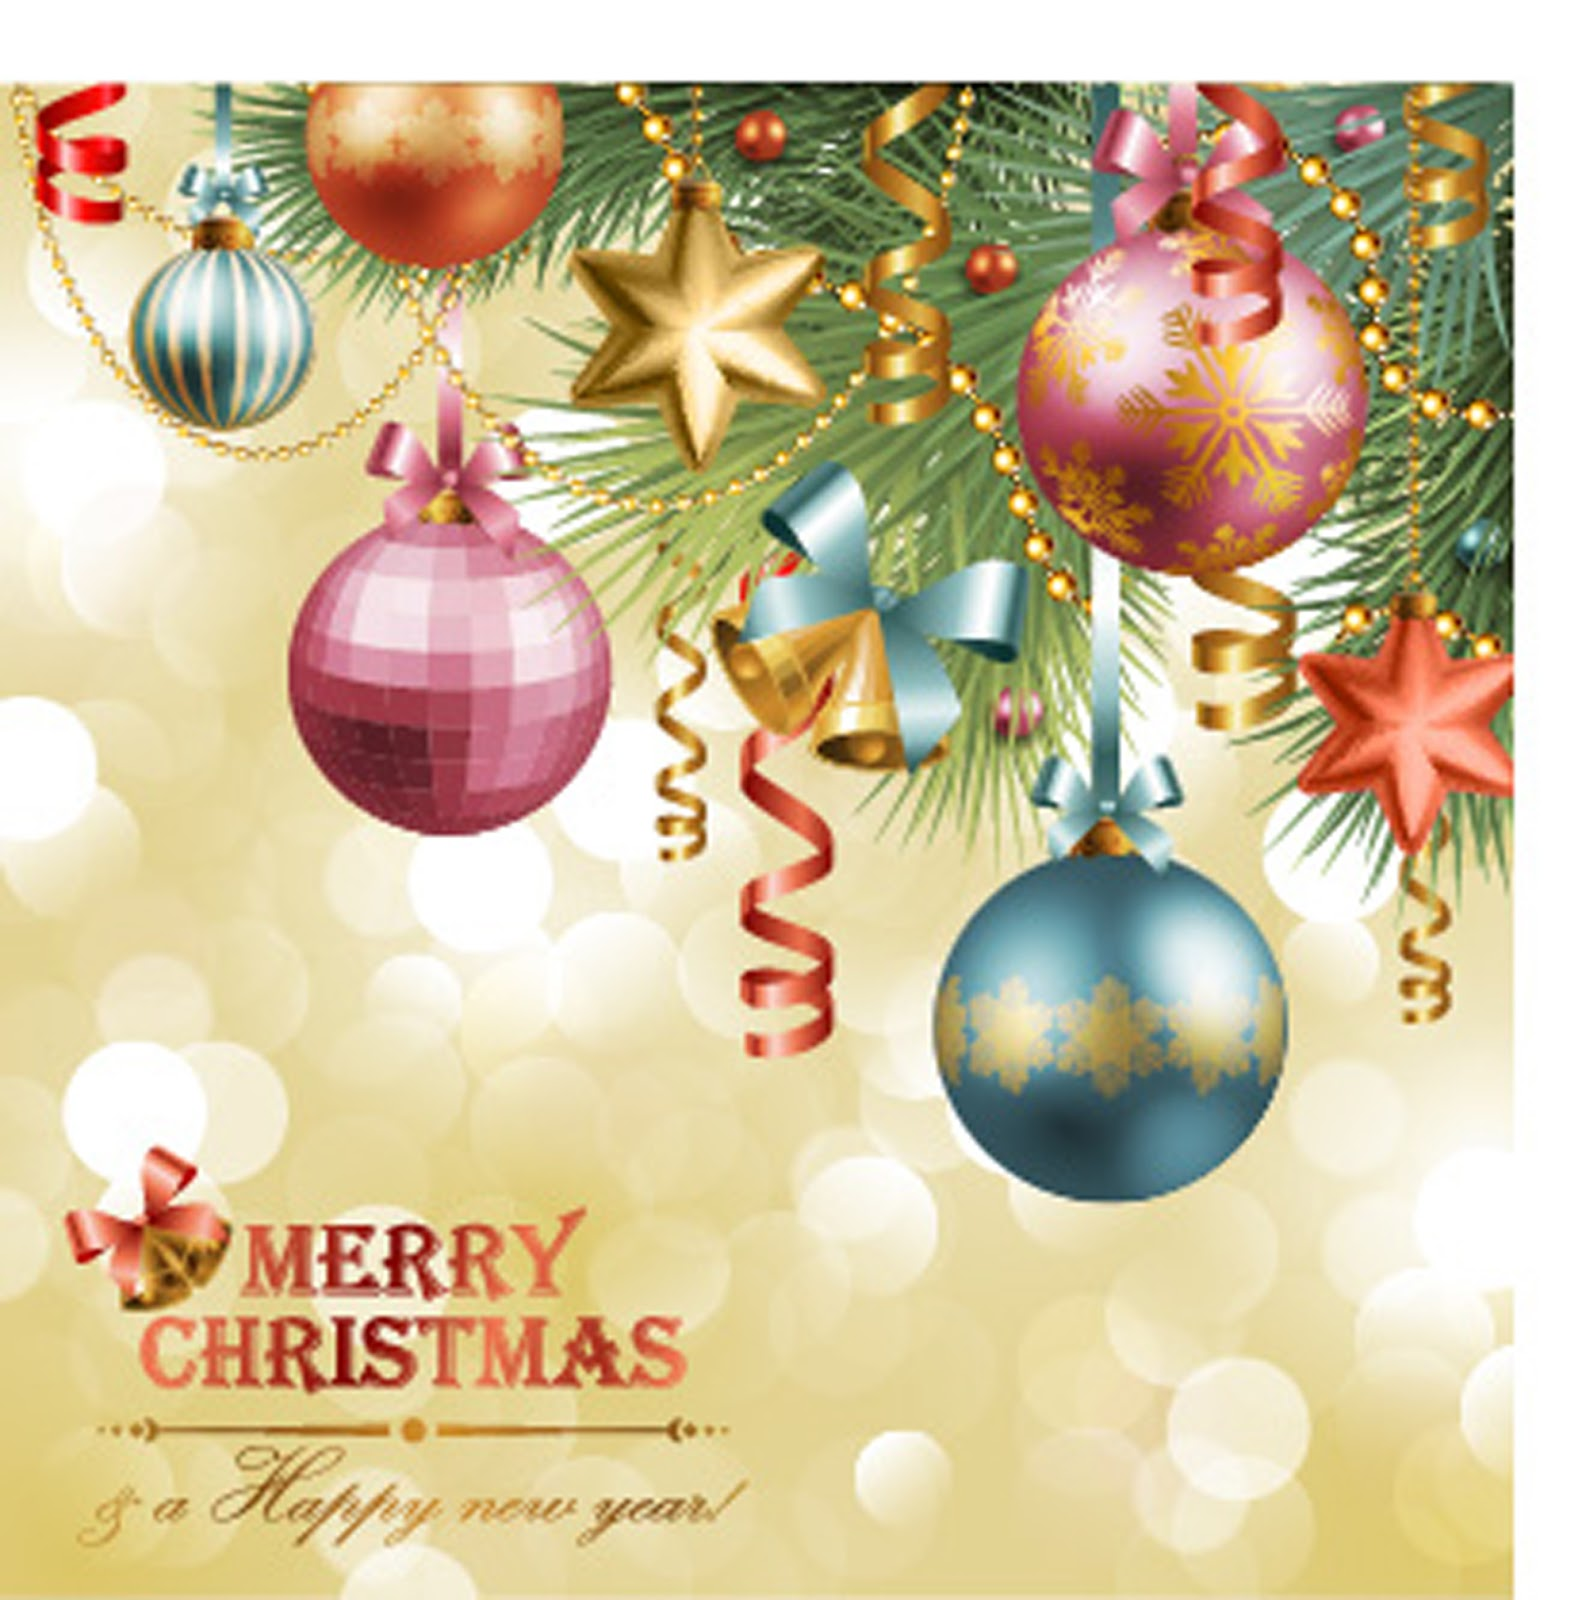 Free Christmas Card Templates Photos in HD | Free HD Widescreen ...